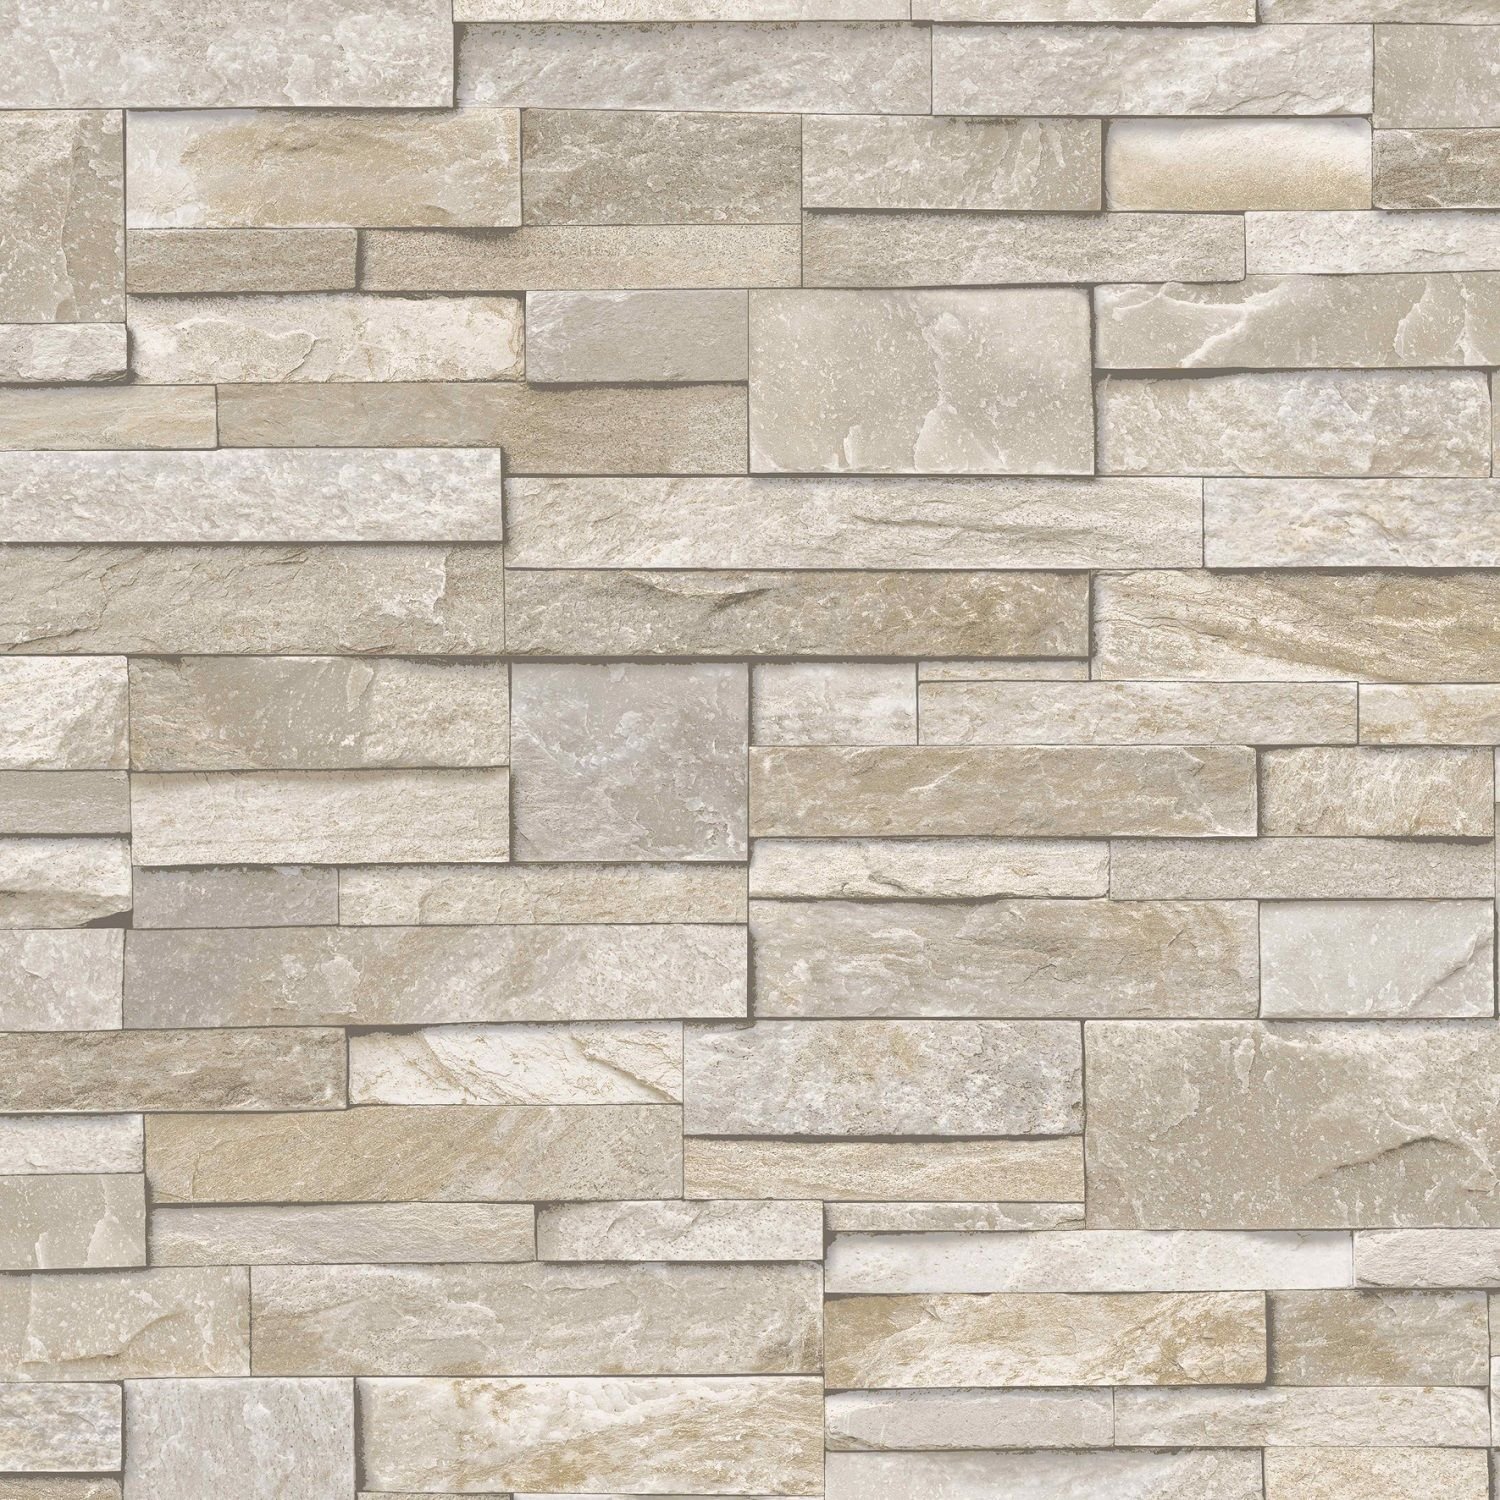 Wonderful Wallpaper Brick Neutral - a17203  Best Photo Reference_101777.jpg